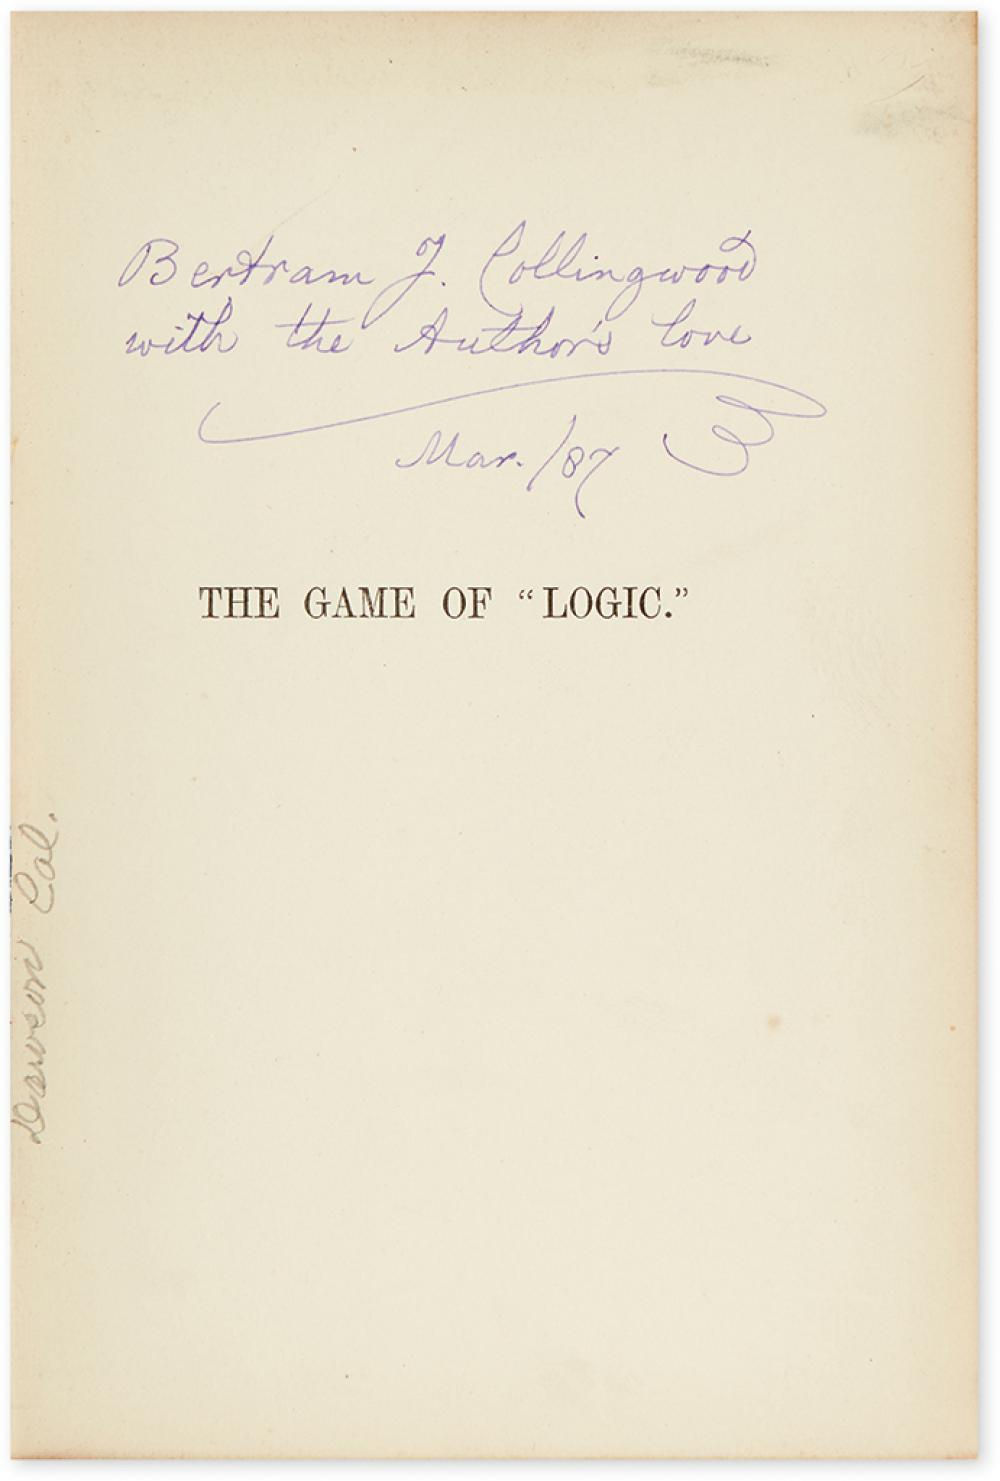 DODGSON, CHARLES LUTWIDGE. The Game of Logic. Inscribed to his nephew, on the half-title: